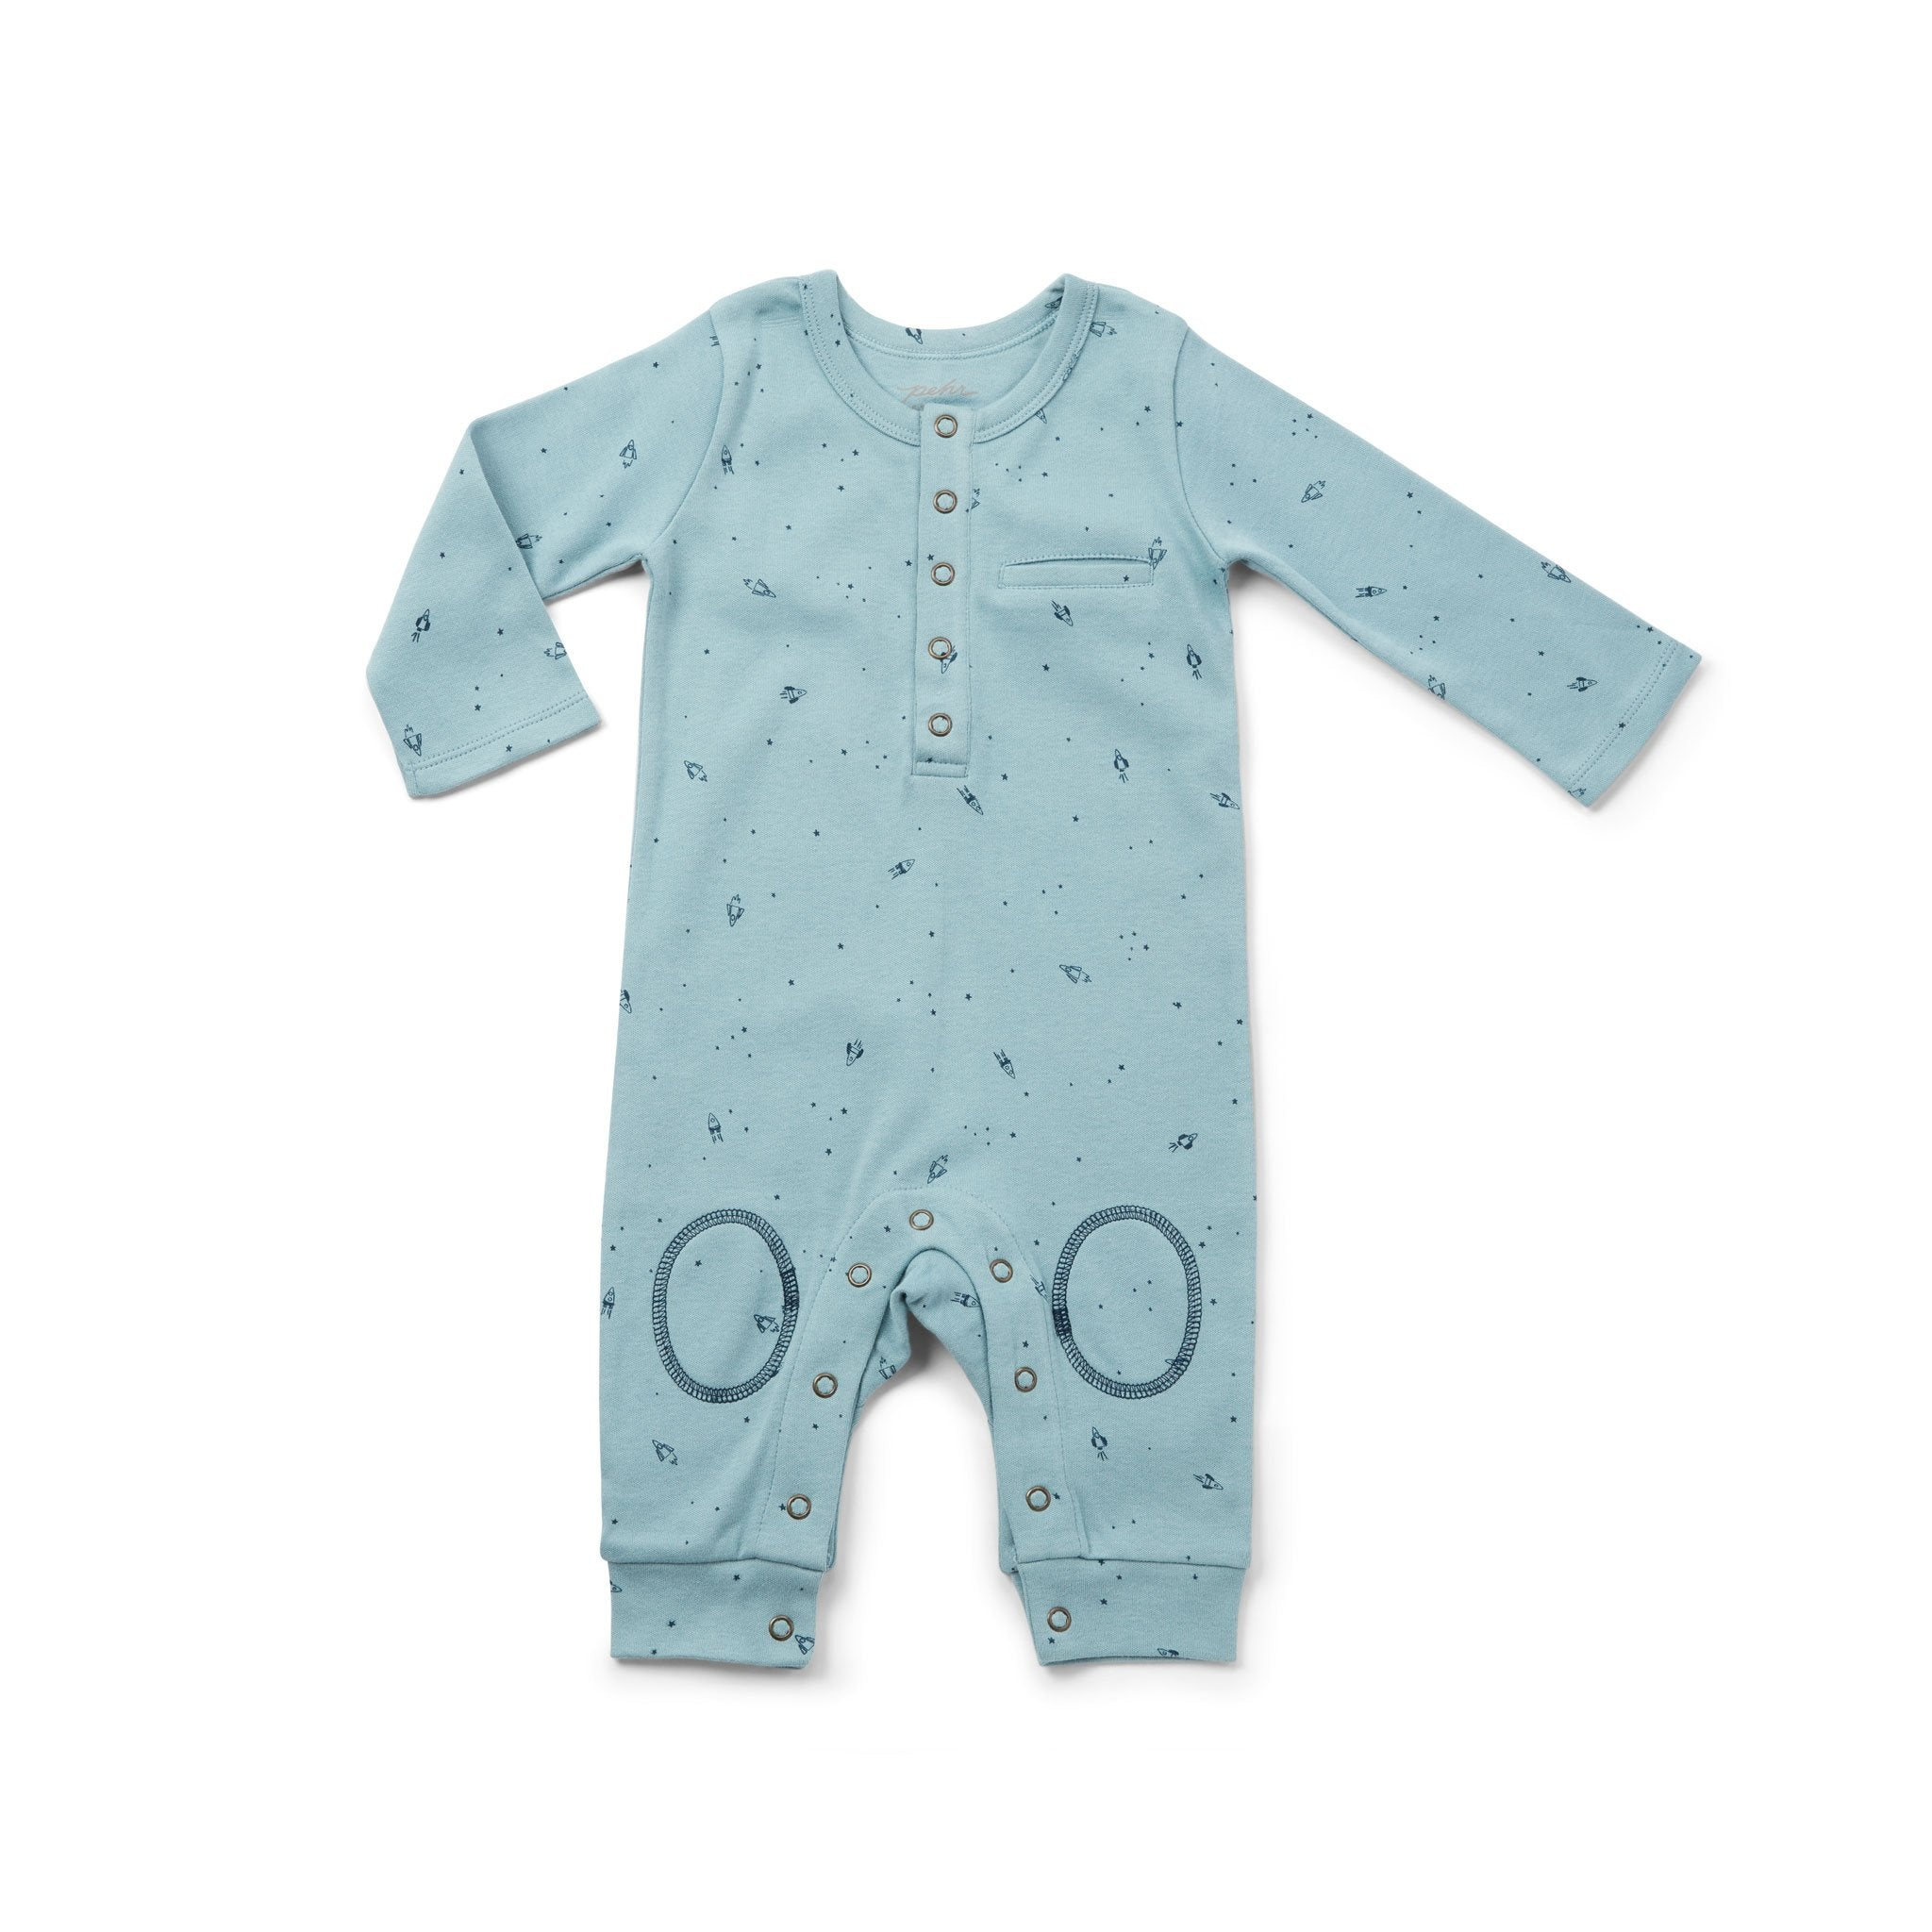 Rocketman Romper